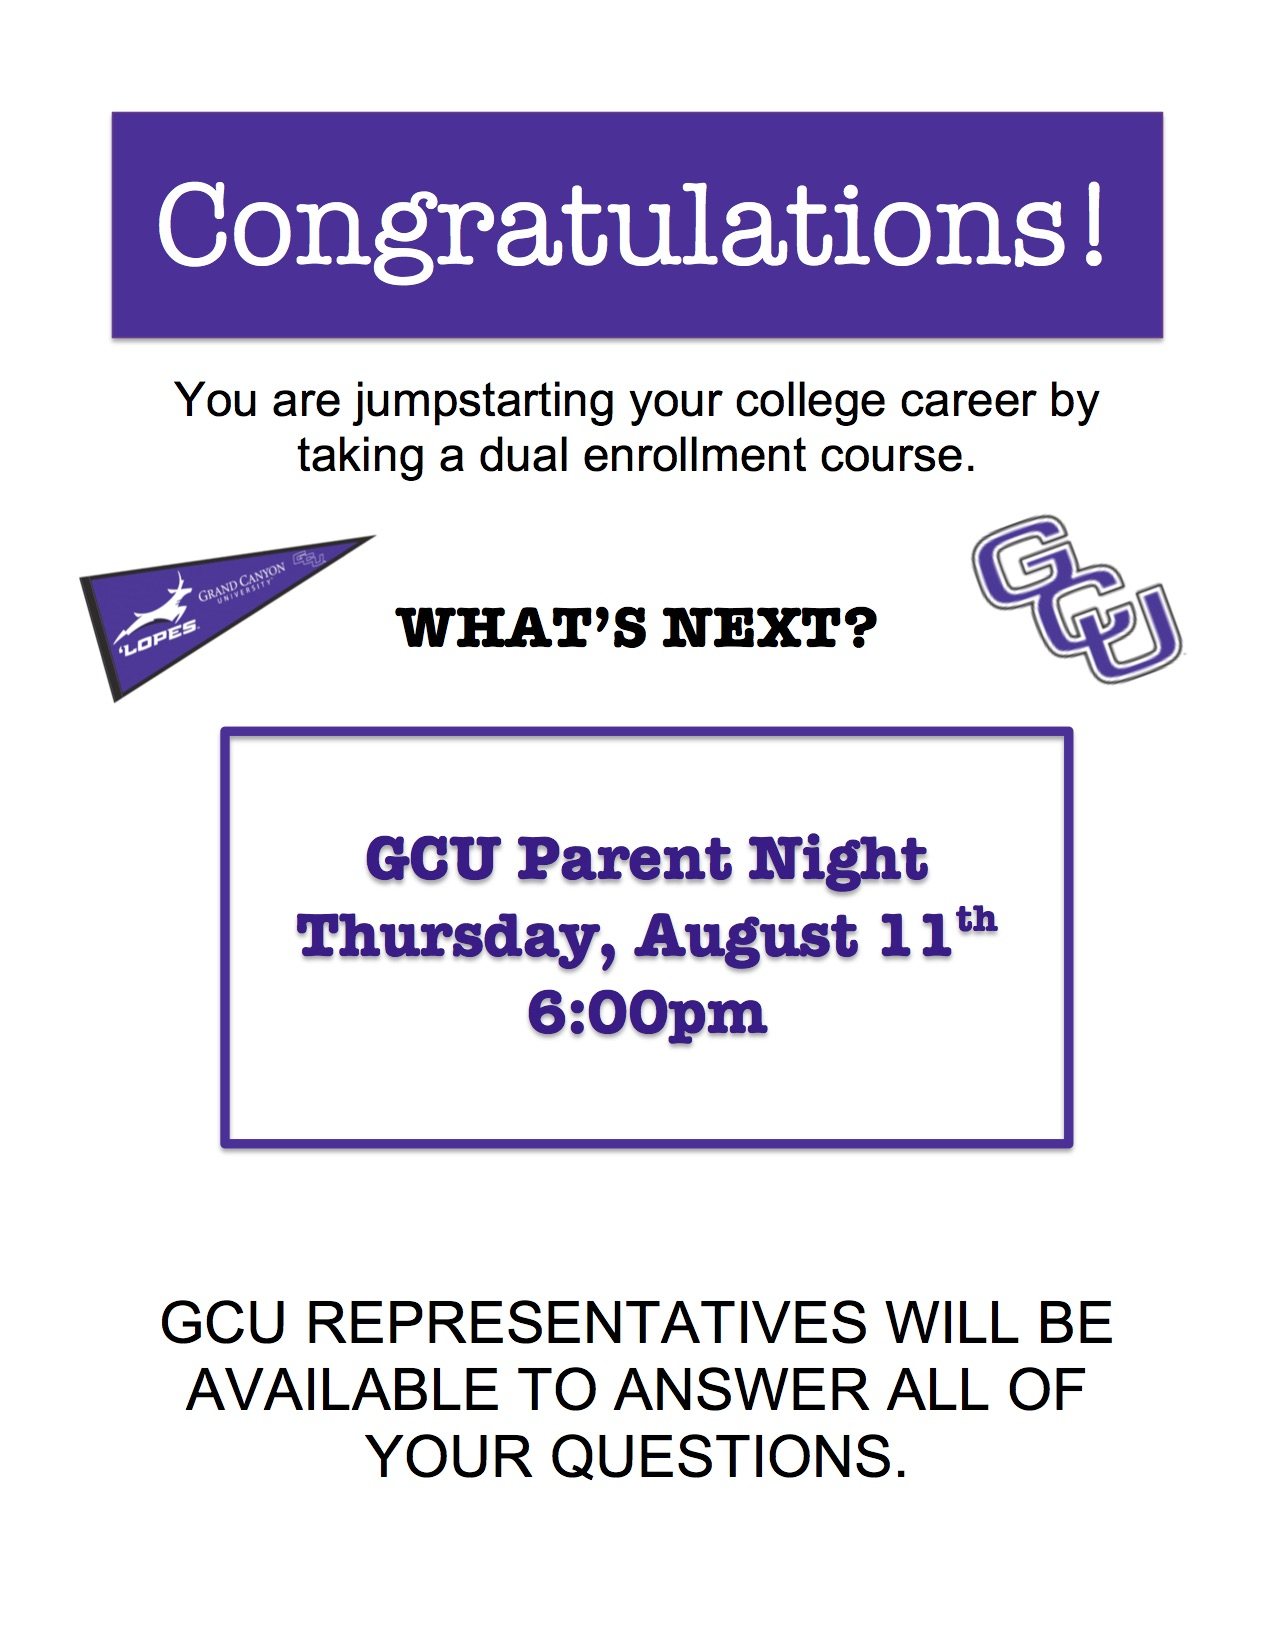 Gcu Parent Night Intended For 2021 2020 Gcu Academic Calendar